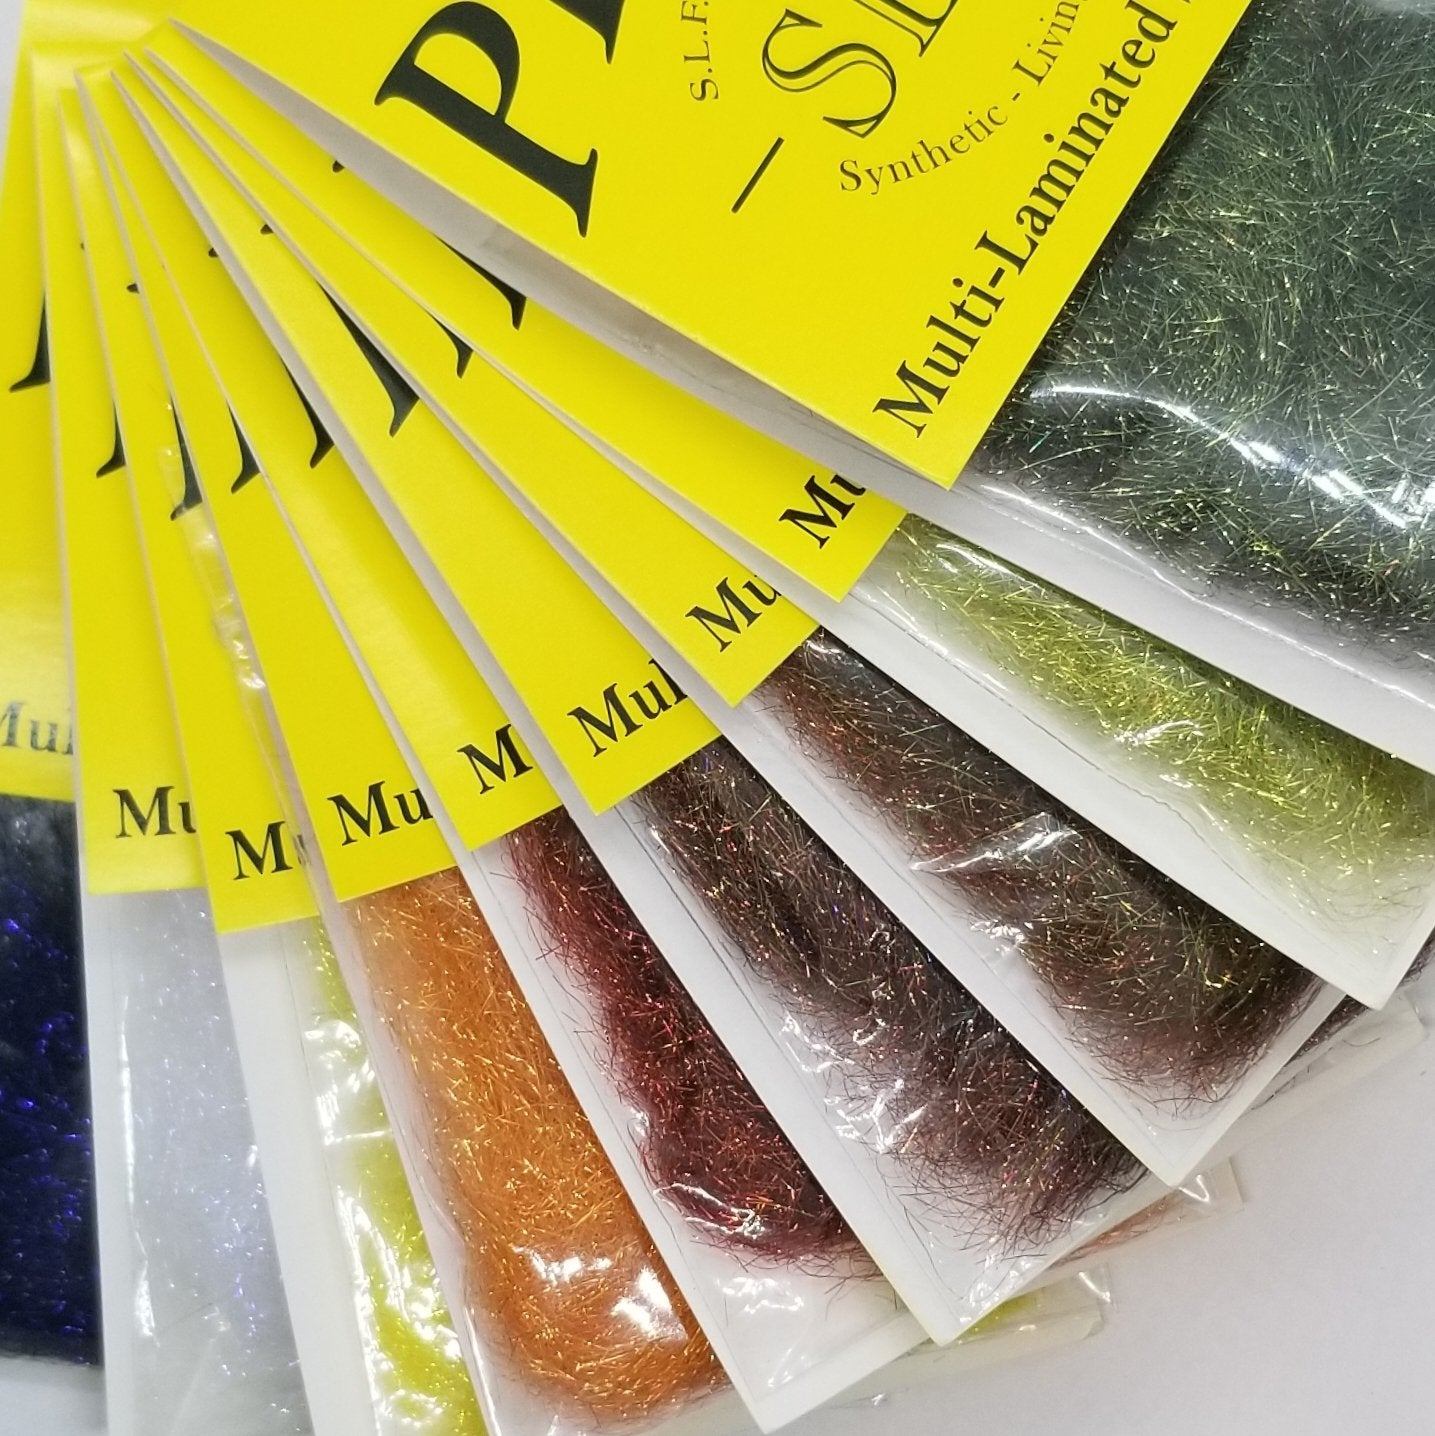 SLF PRISM Dubbing - Togens Fly ShopFly Tying Materials